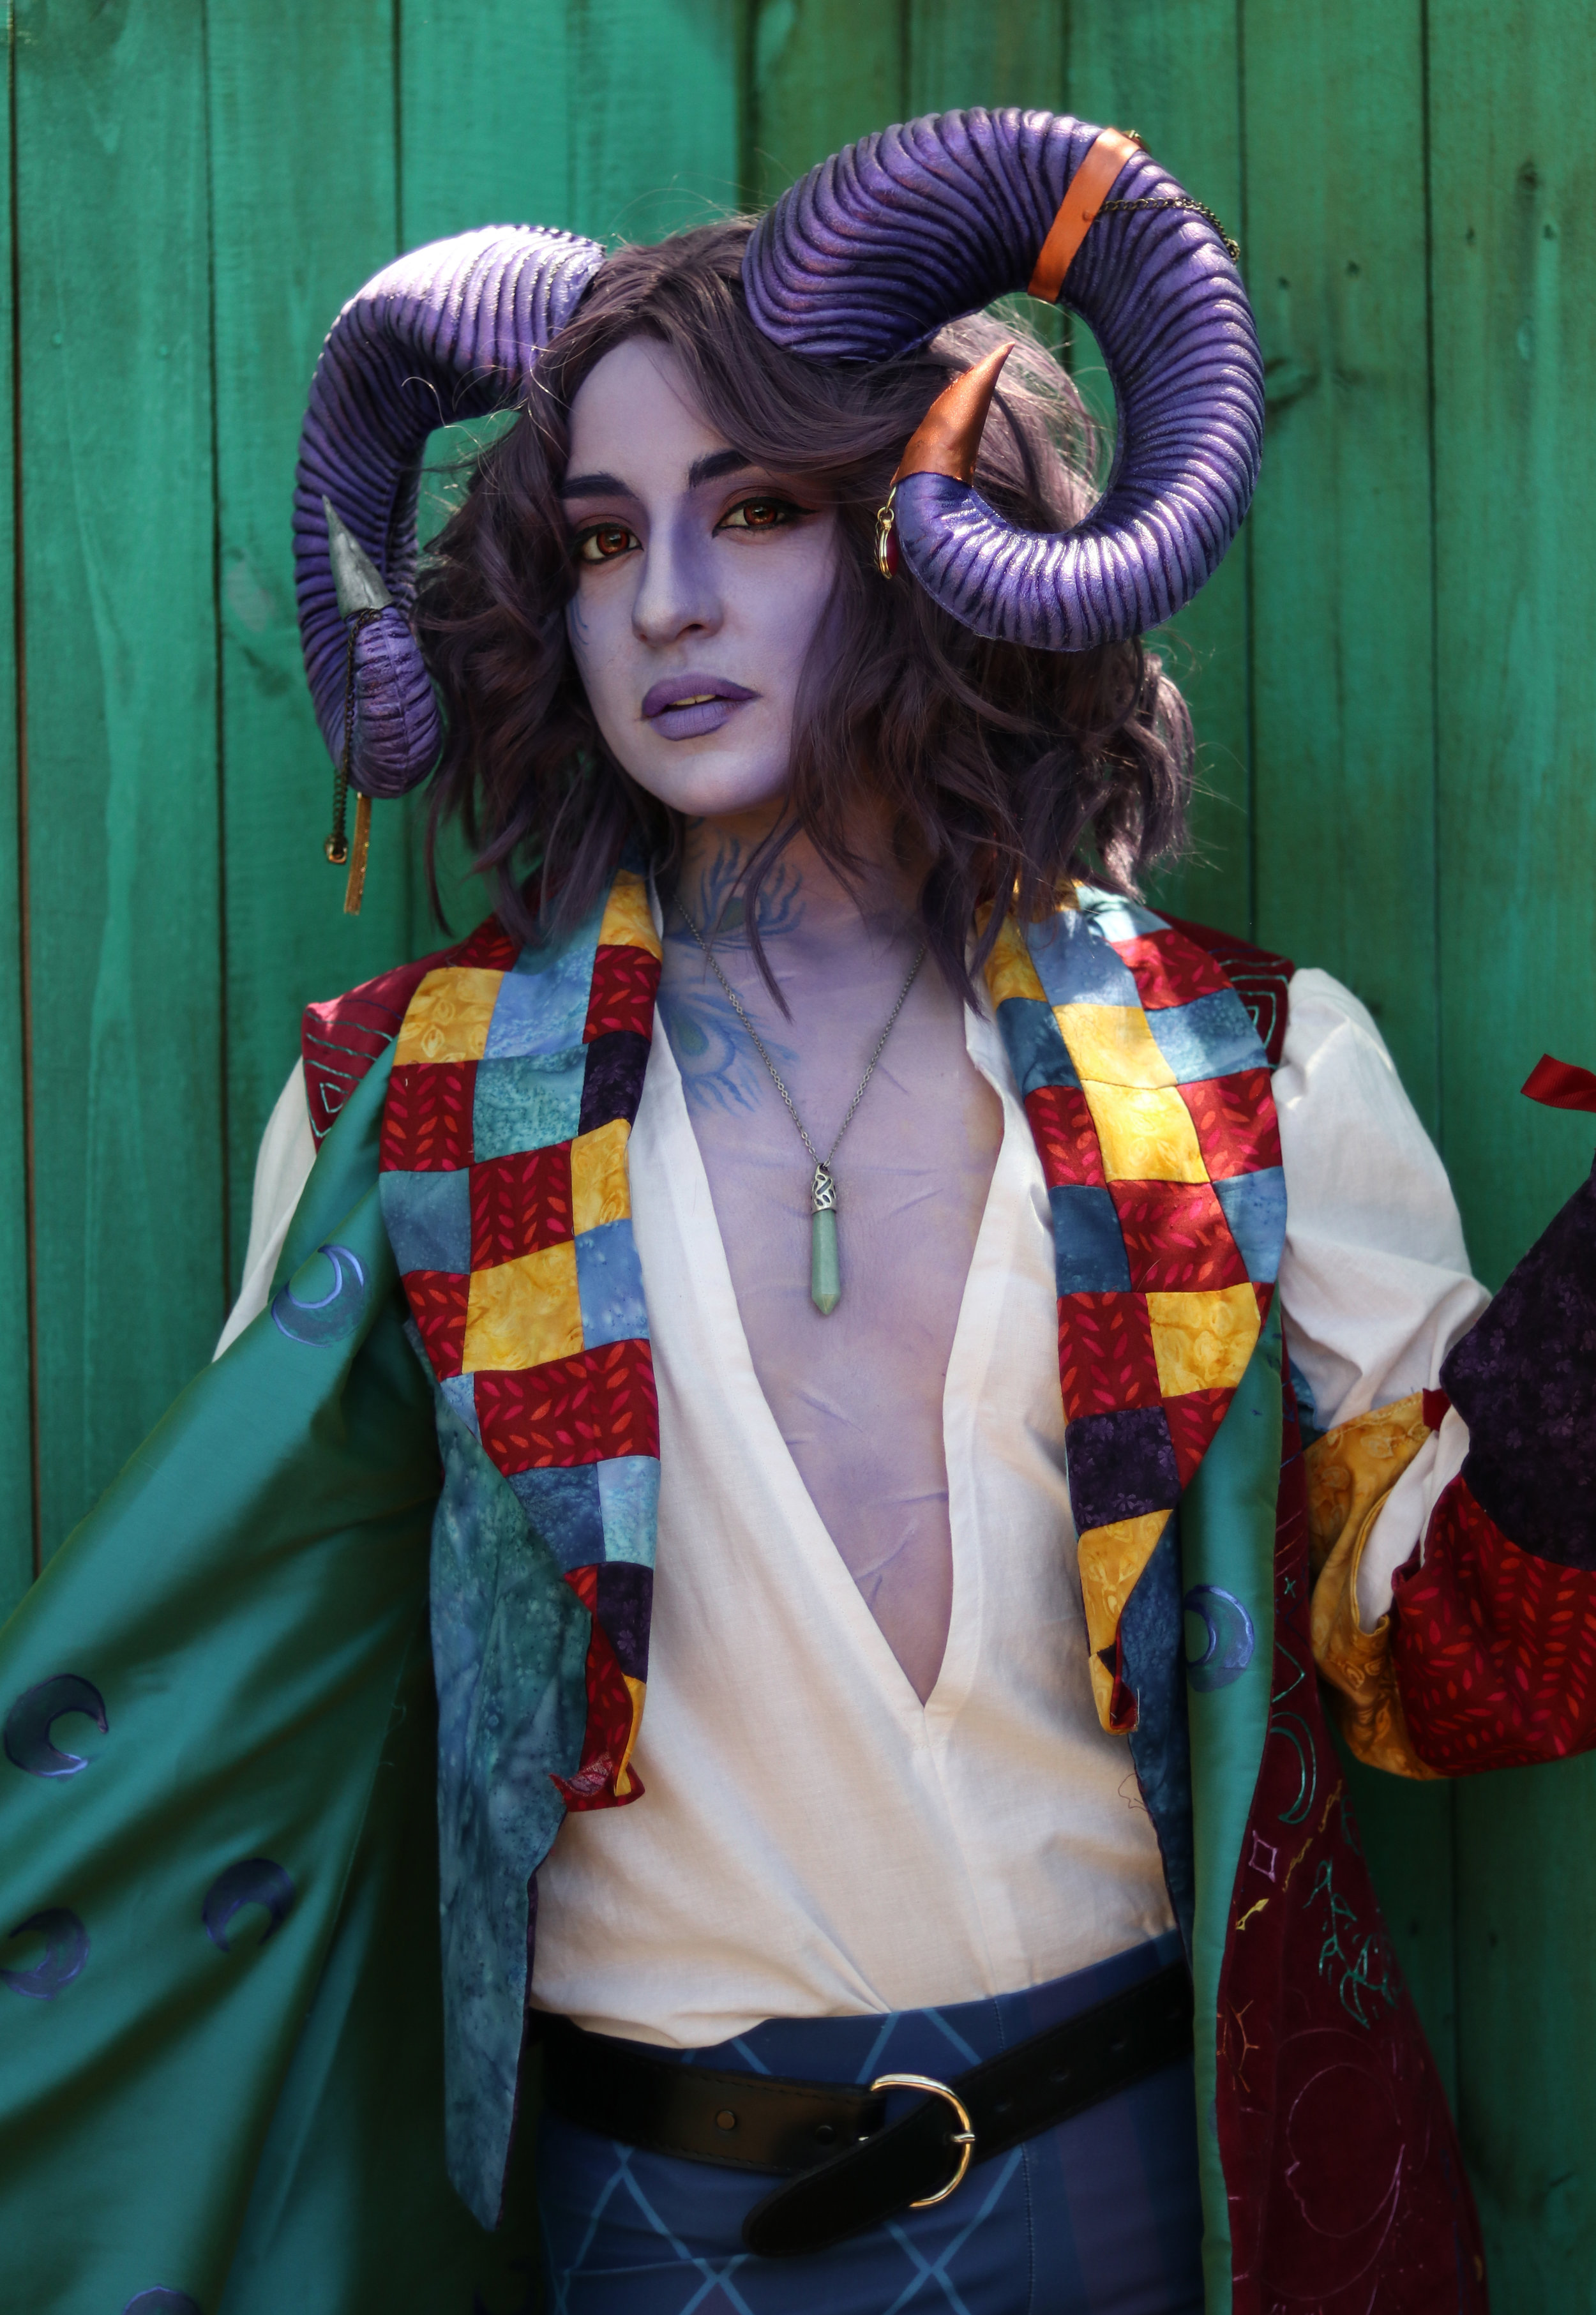 Photos by Sam Hunter  @shunter_  at the Bay Area Renaissance Festival  Coat, bolero, and shirt sewn and hand painted by Violet Leggings are Alysaa Avery on Redbubble Horns are modified Elope costume horns painted with Golden acrylics